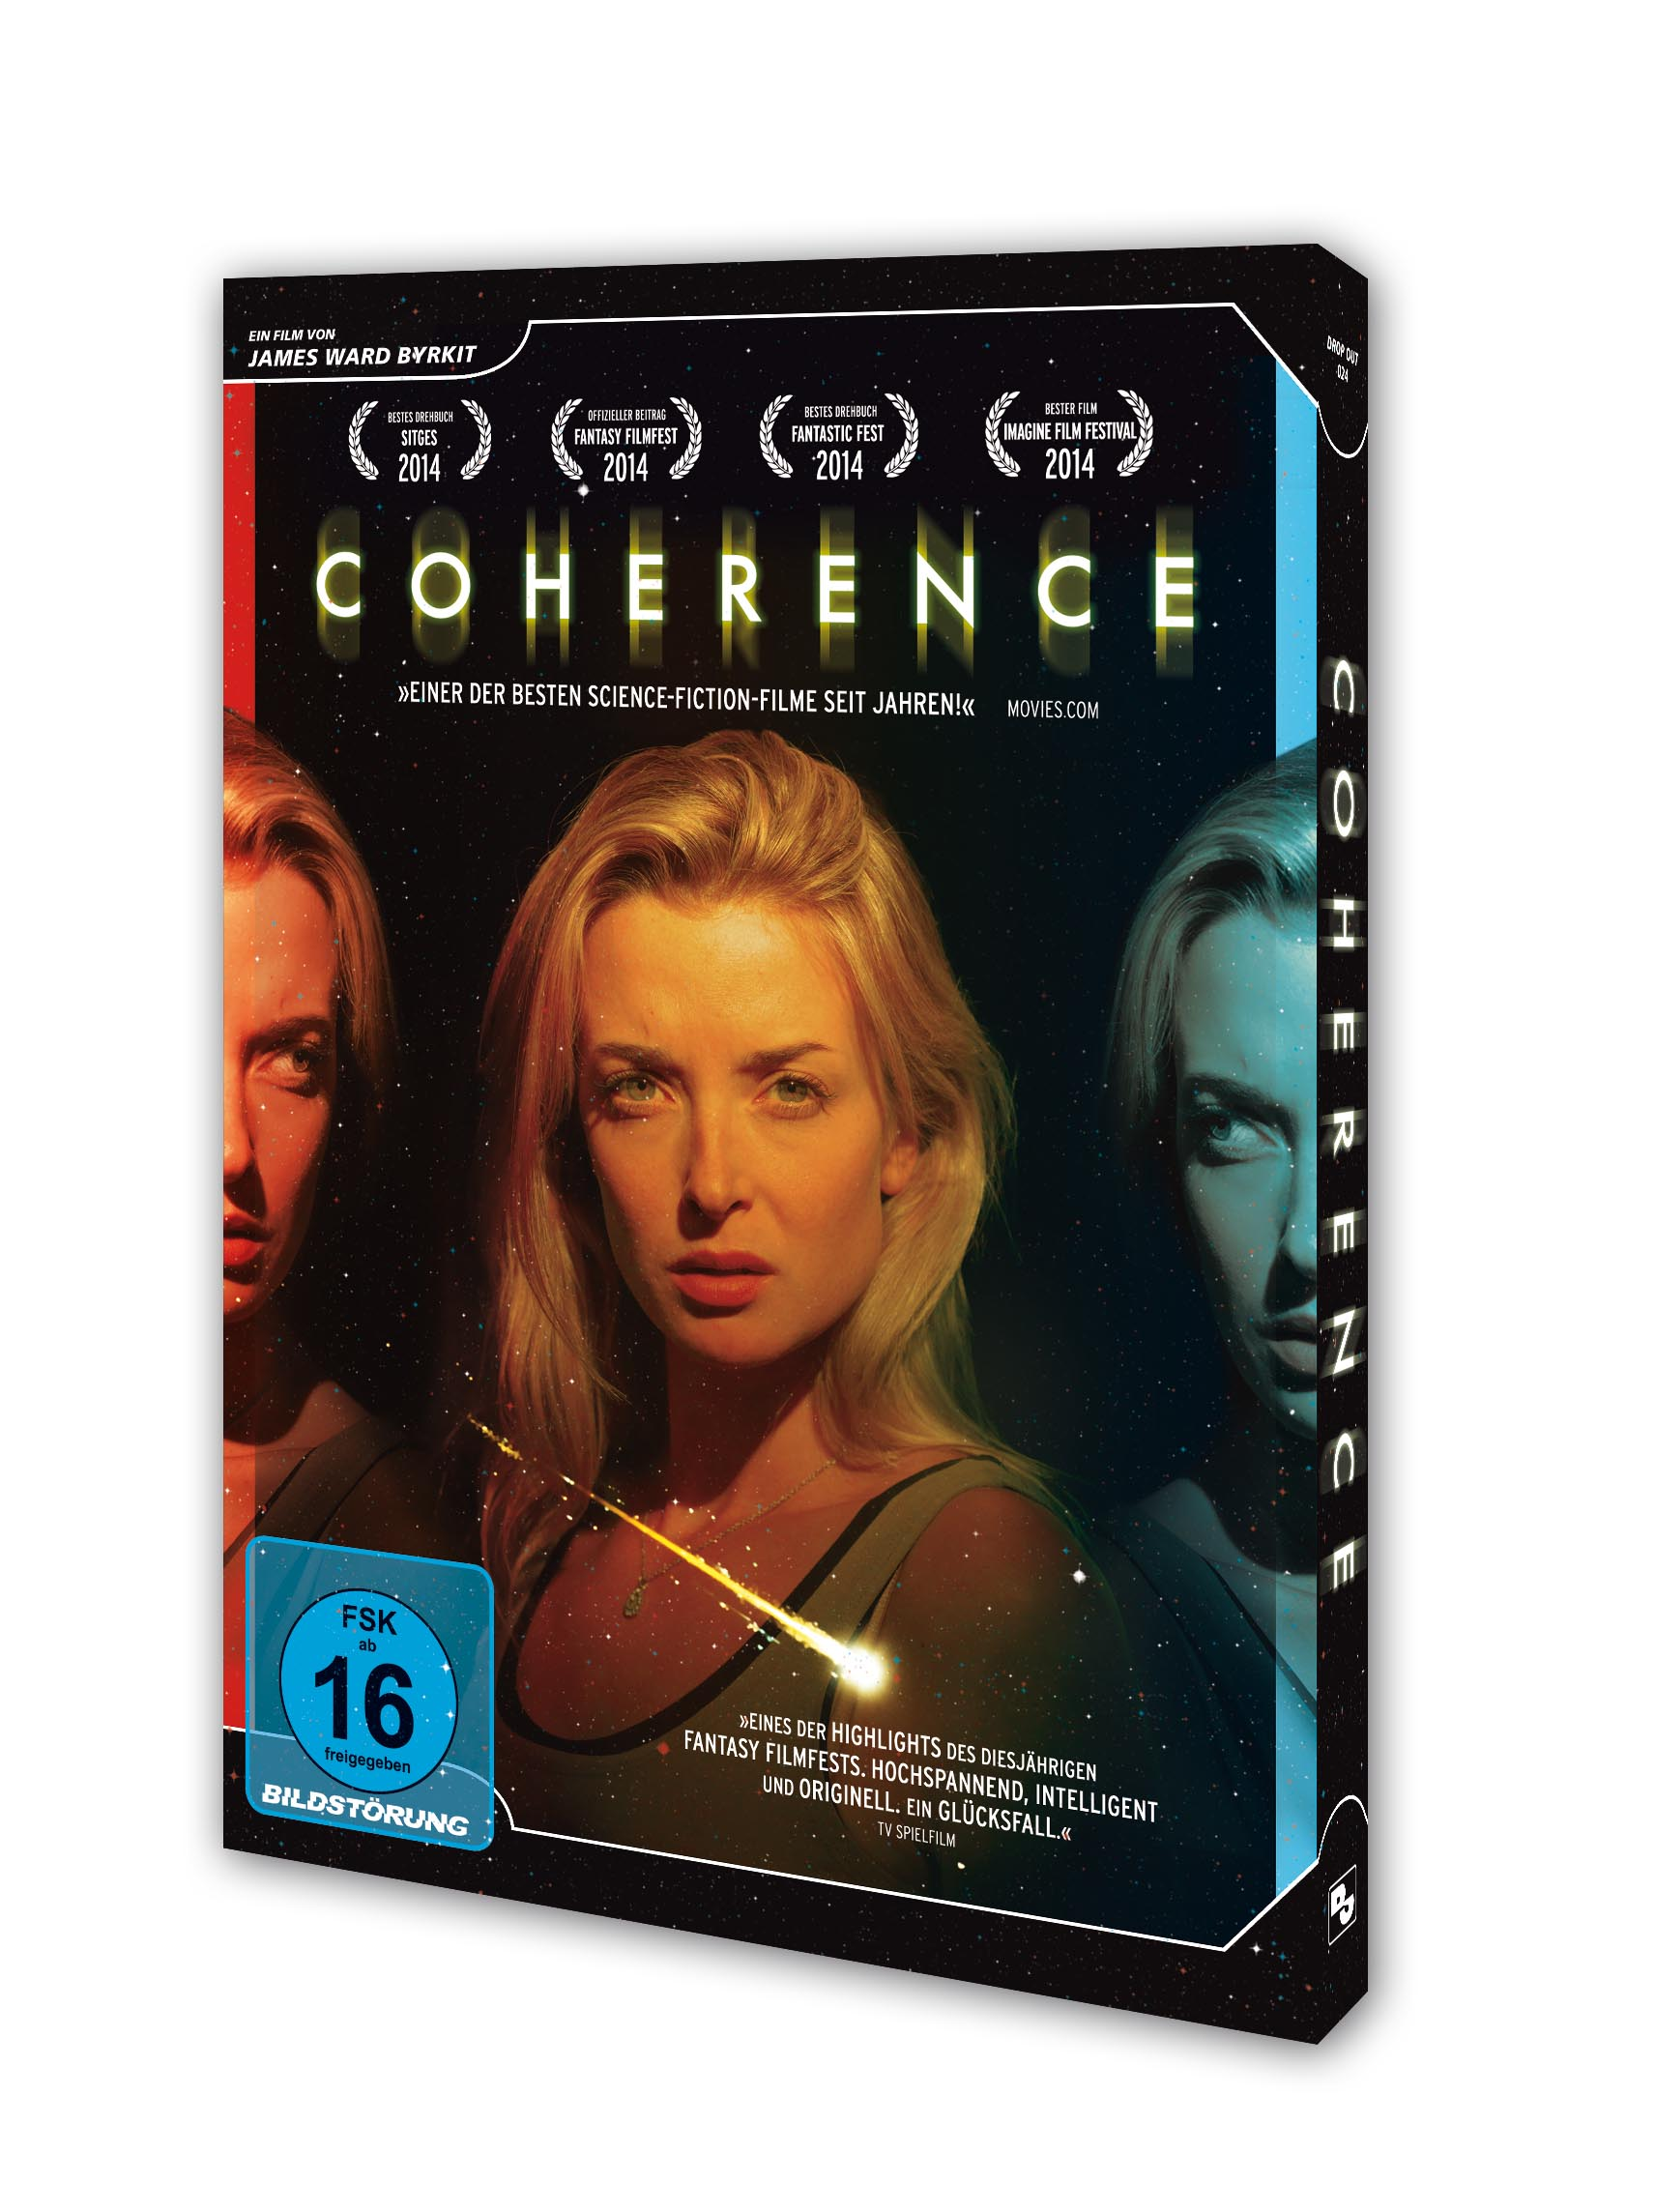 DVD Packshot